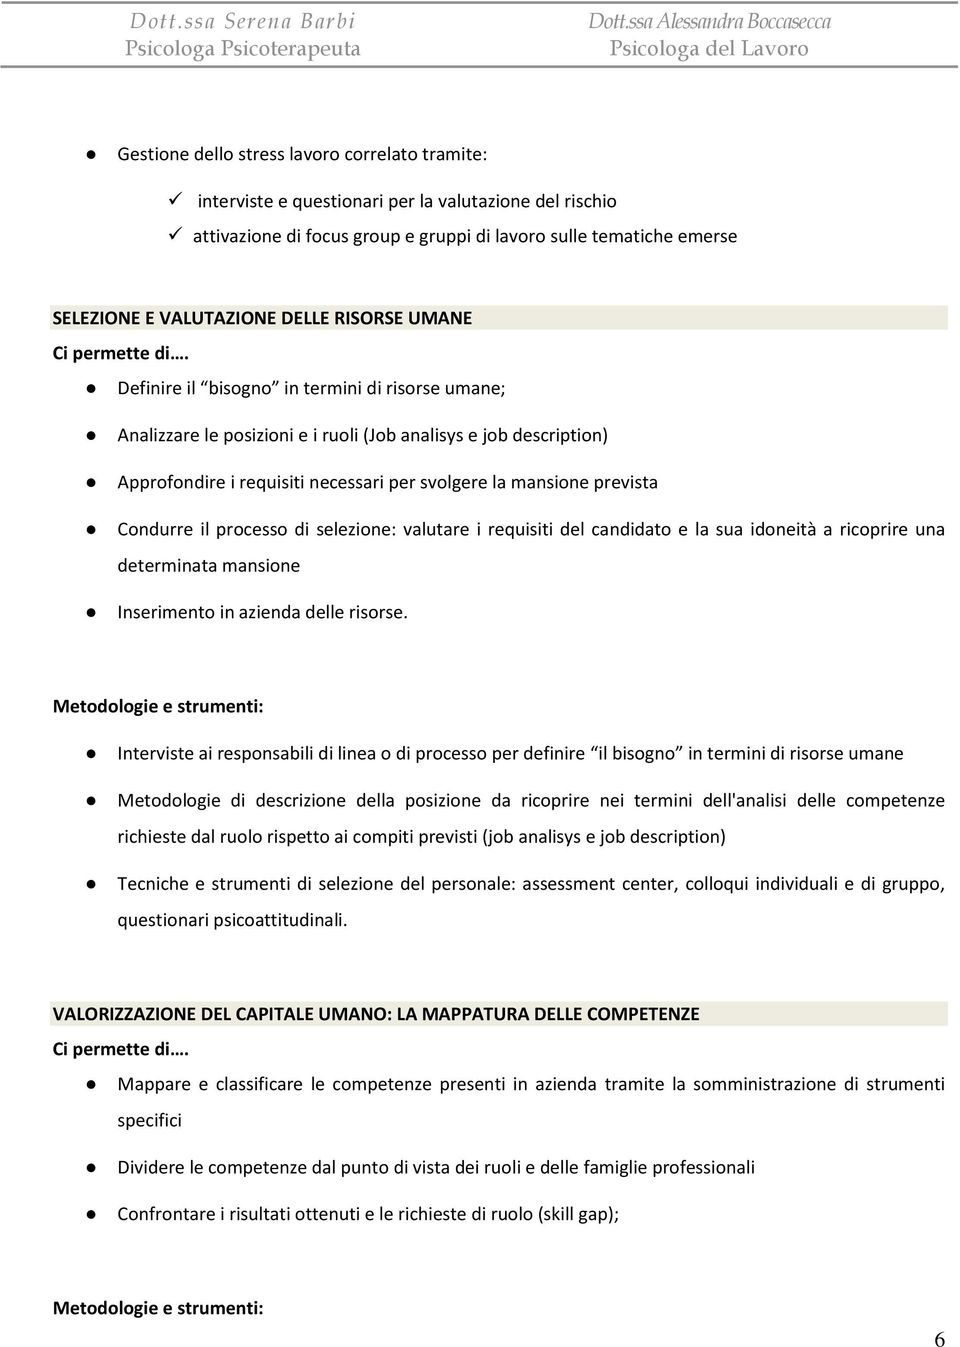 Definire il bisogno in termini di risorse umane; Analizzare le posizioni e i ruoli (Job analisys e job description) Approfondire i requisiti necessari per svolgere la mansione prevista Condurre il